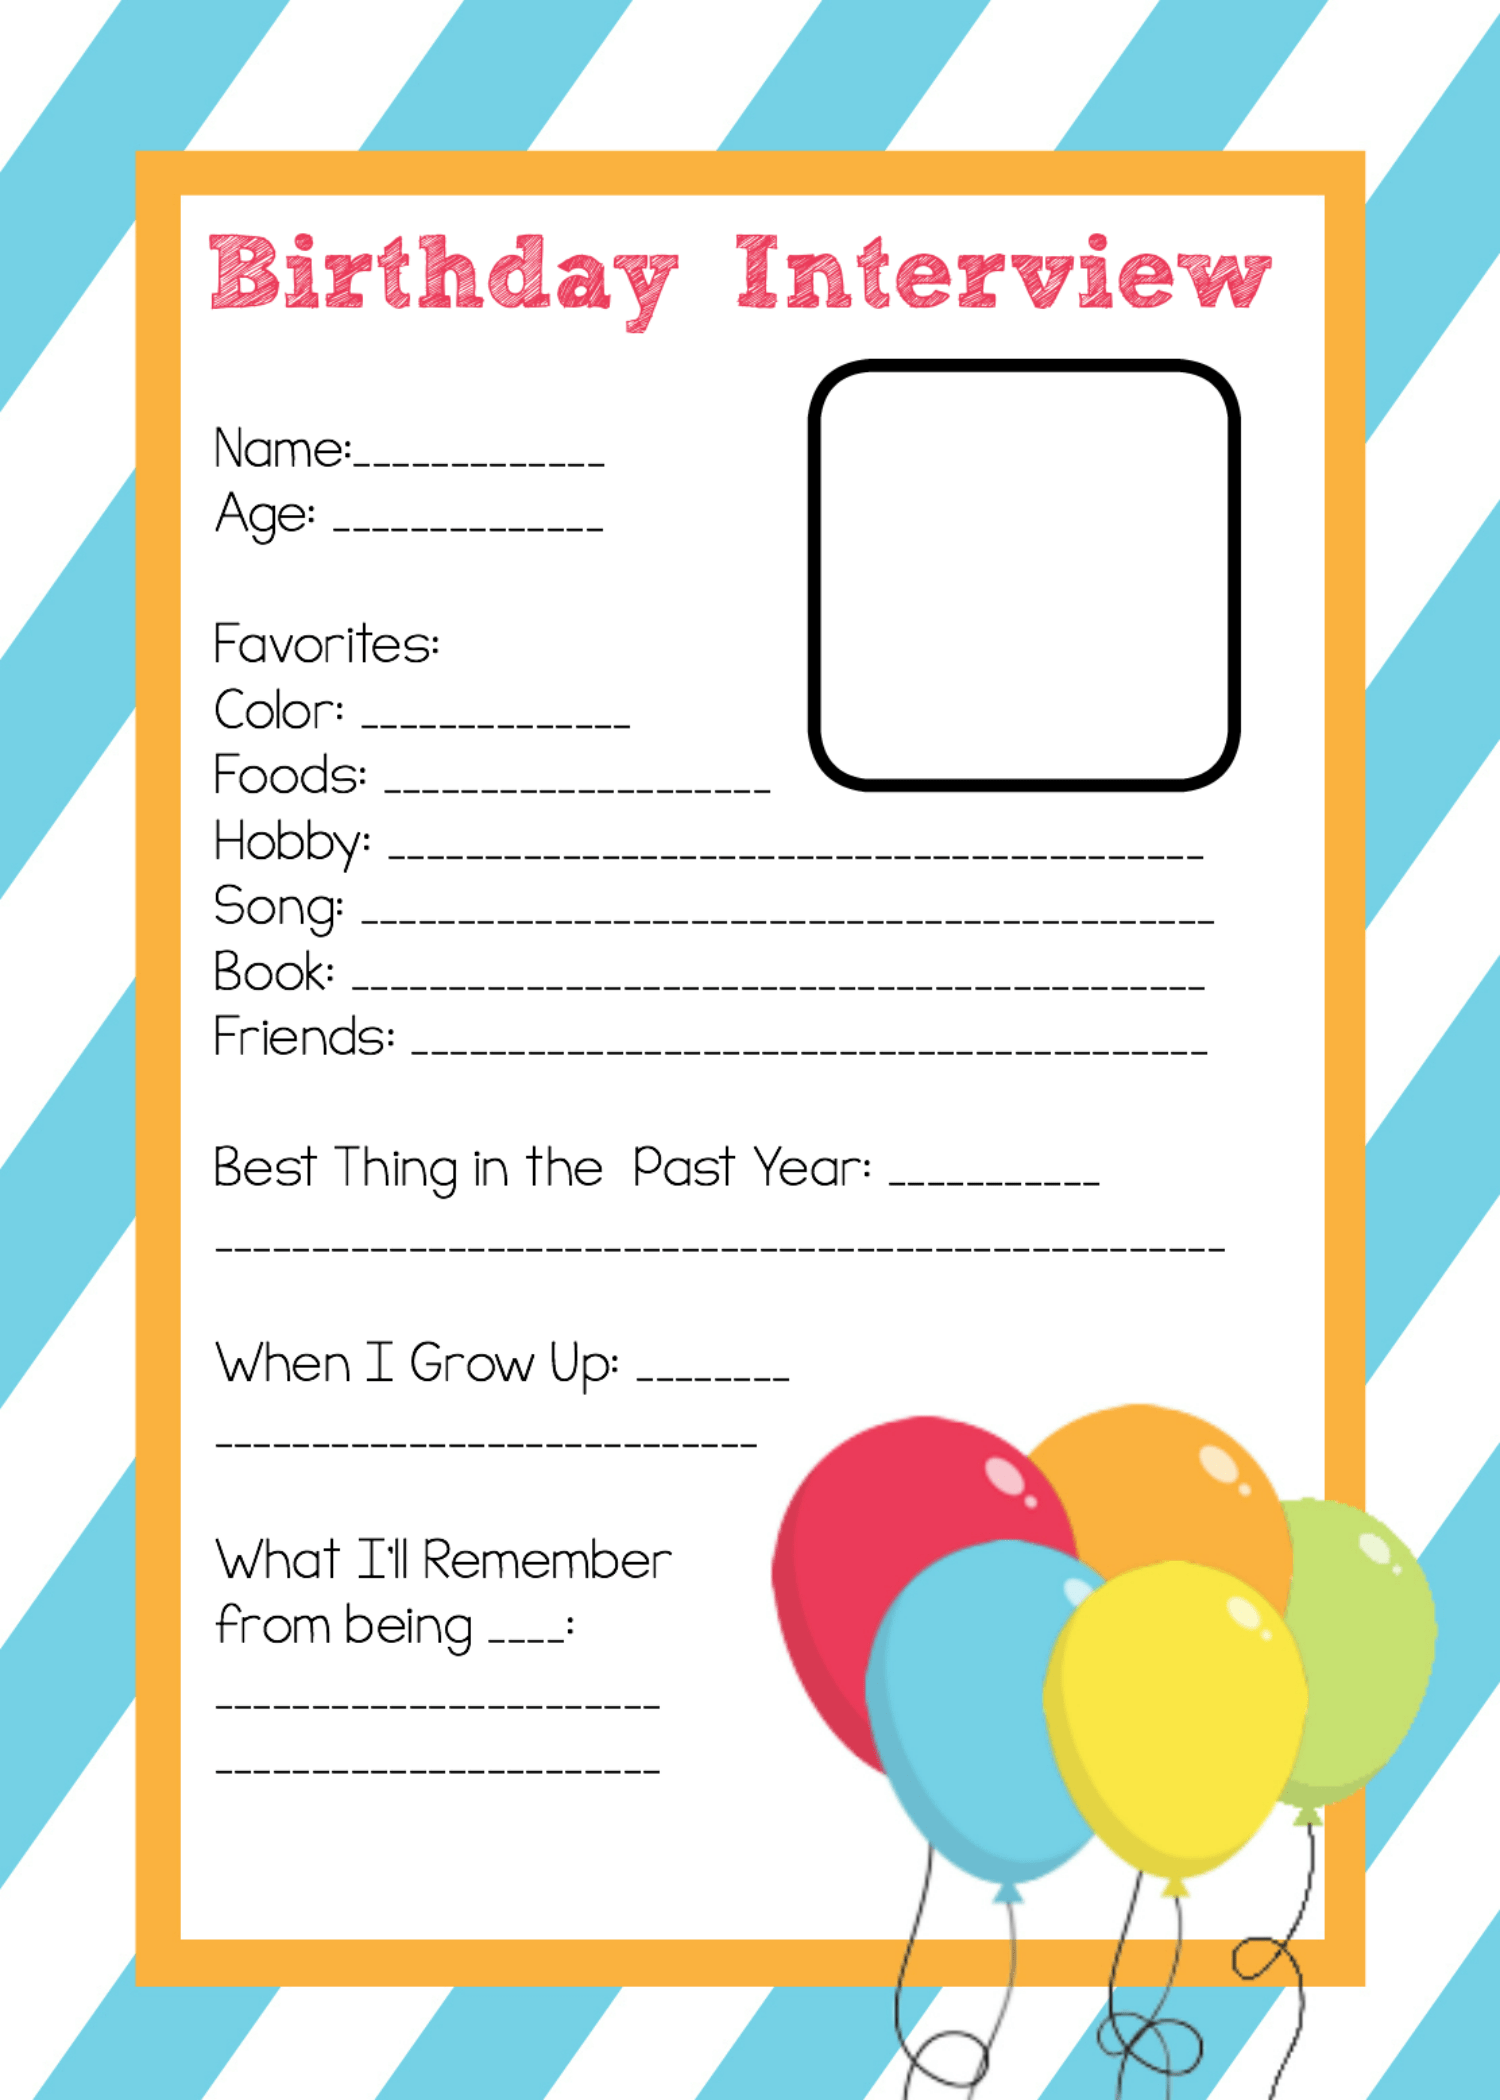 Free Printable Birthday Interview Template